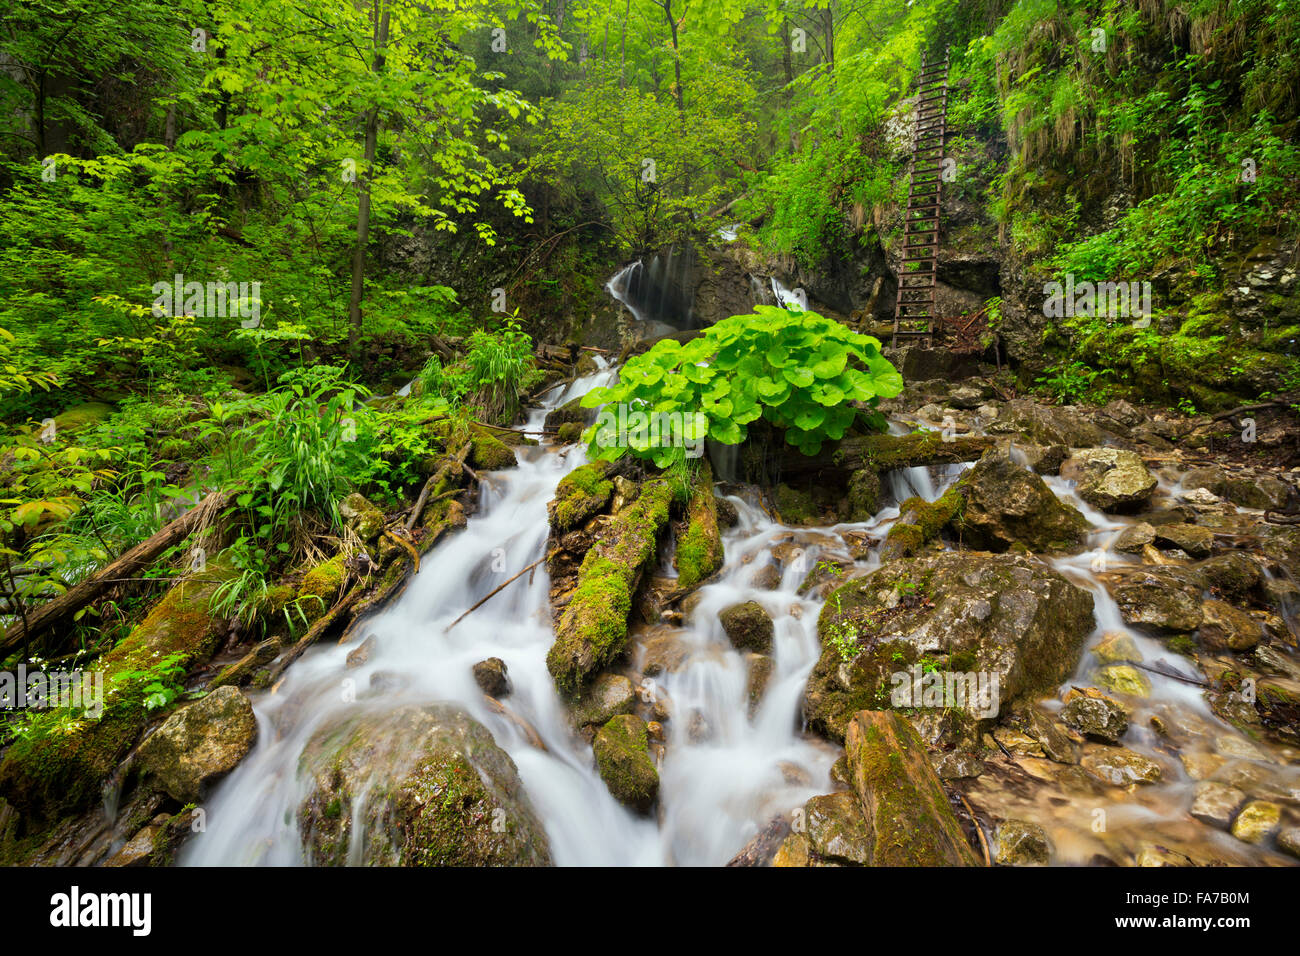 A waterfall in a lush gorge in Slovenský Raj in Slovakia. - Stock Image